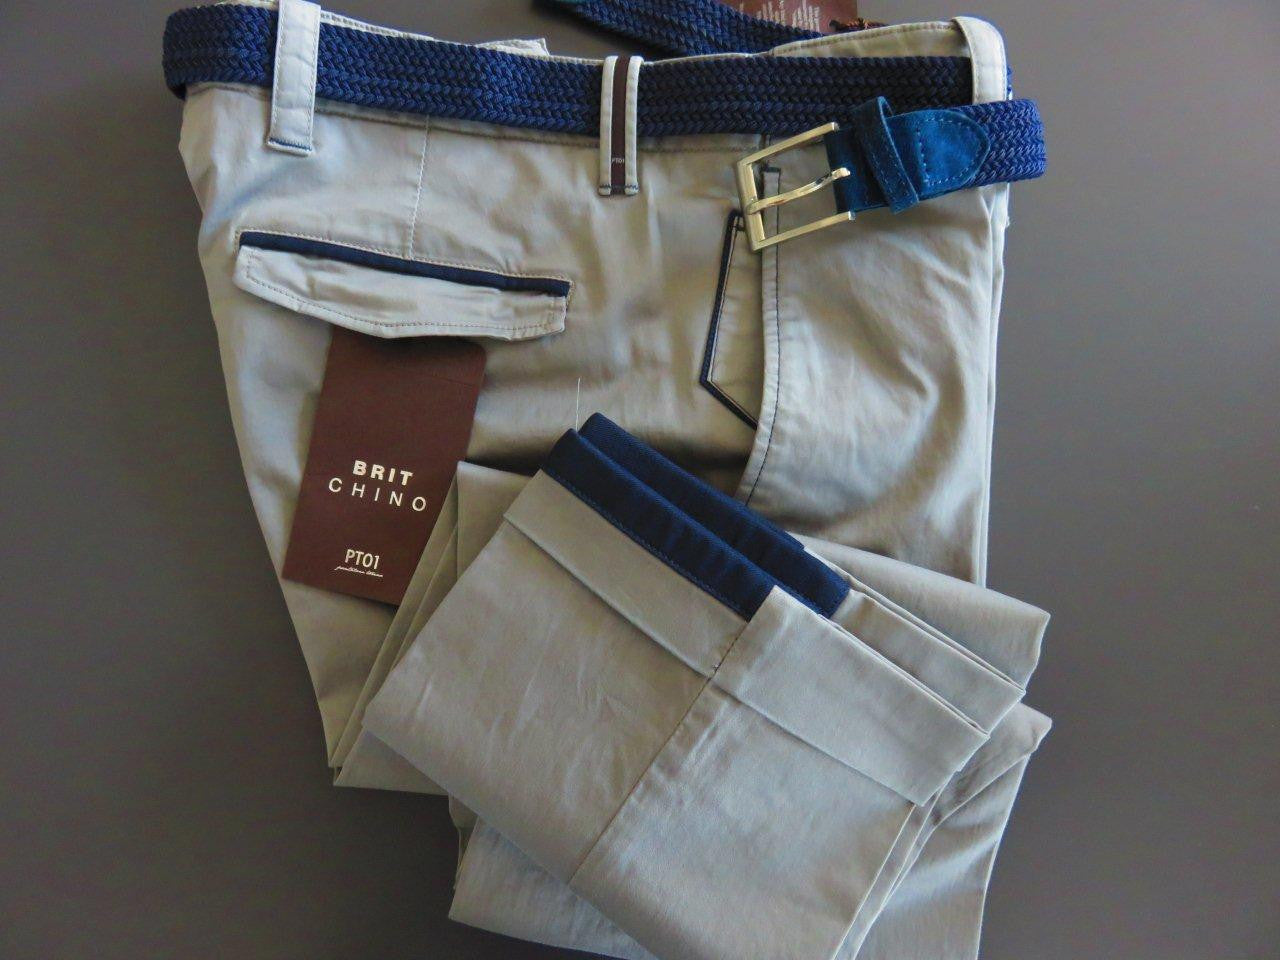 PT01 Pantaloni Torino - Model Brit Chino with belt